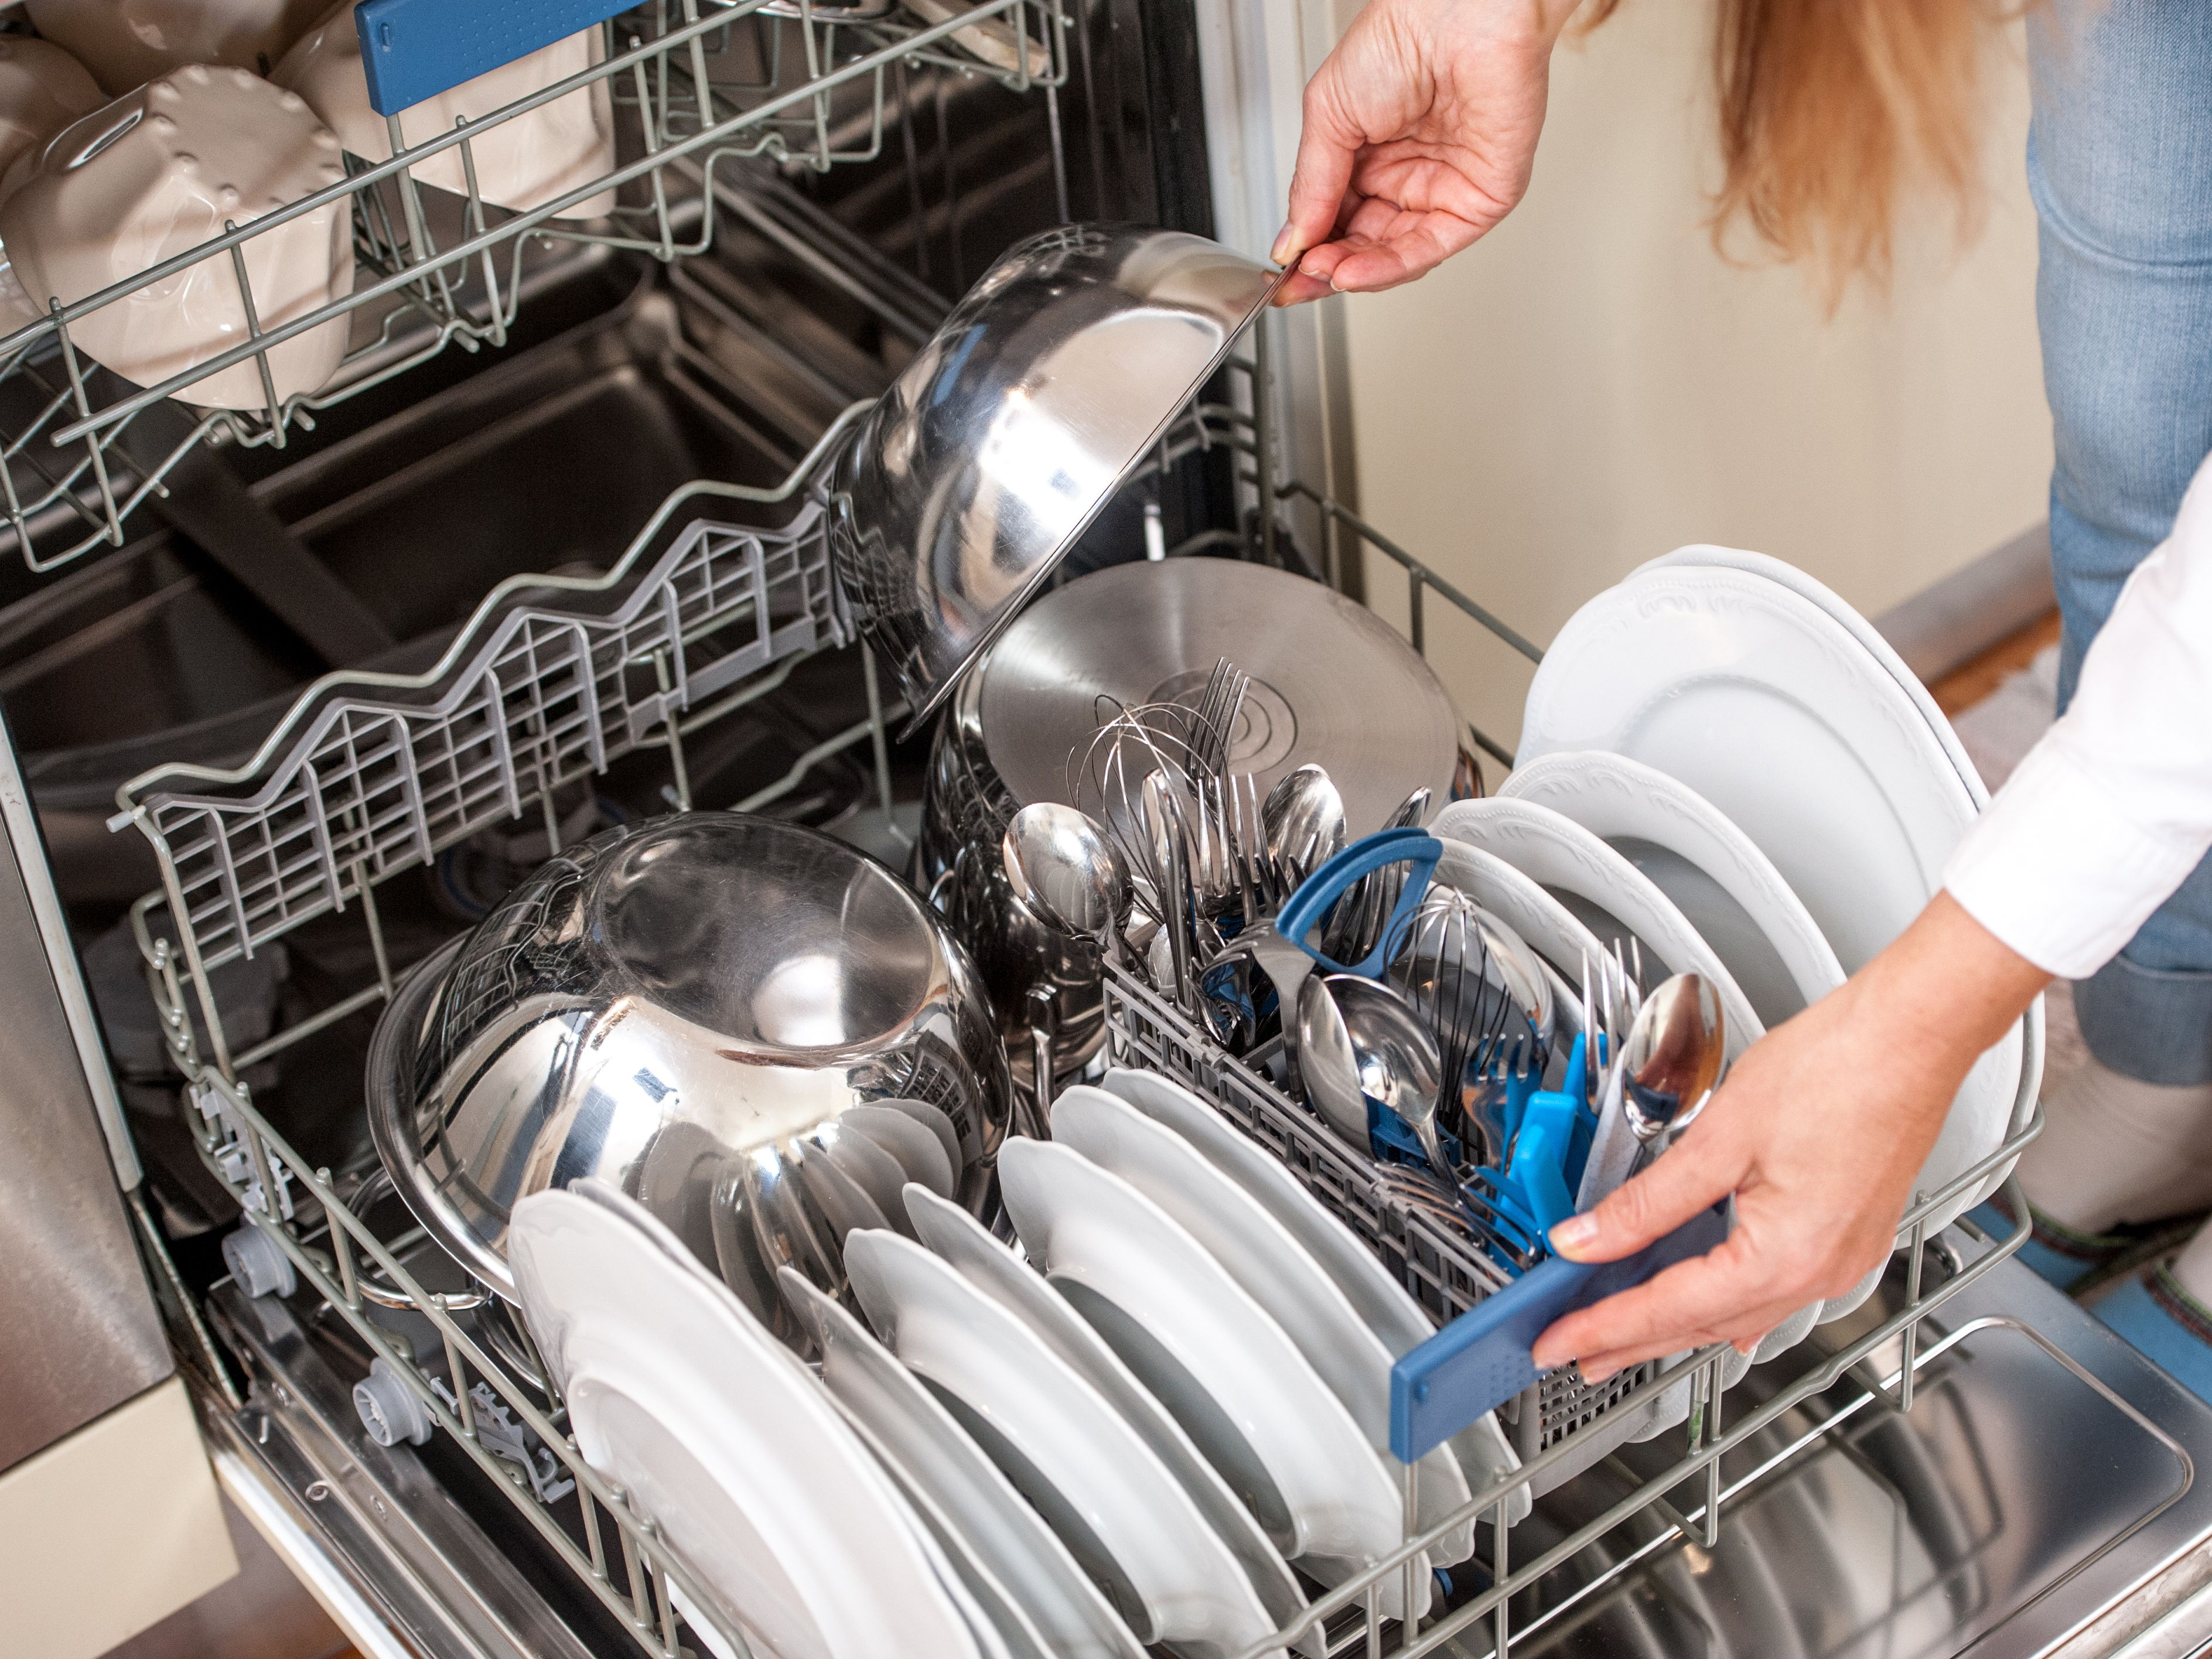 How To Load A Dishwasher The Right Way